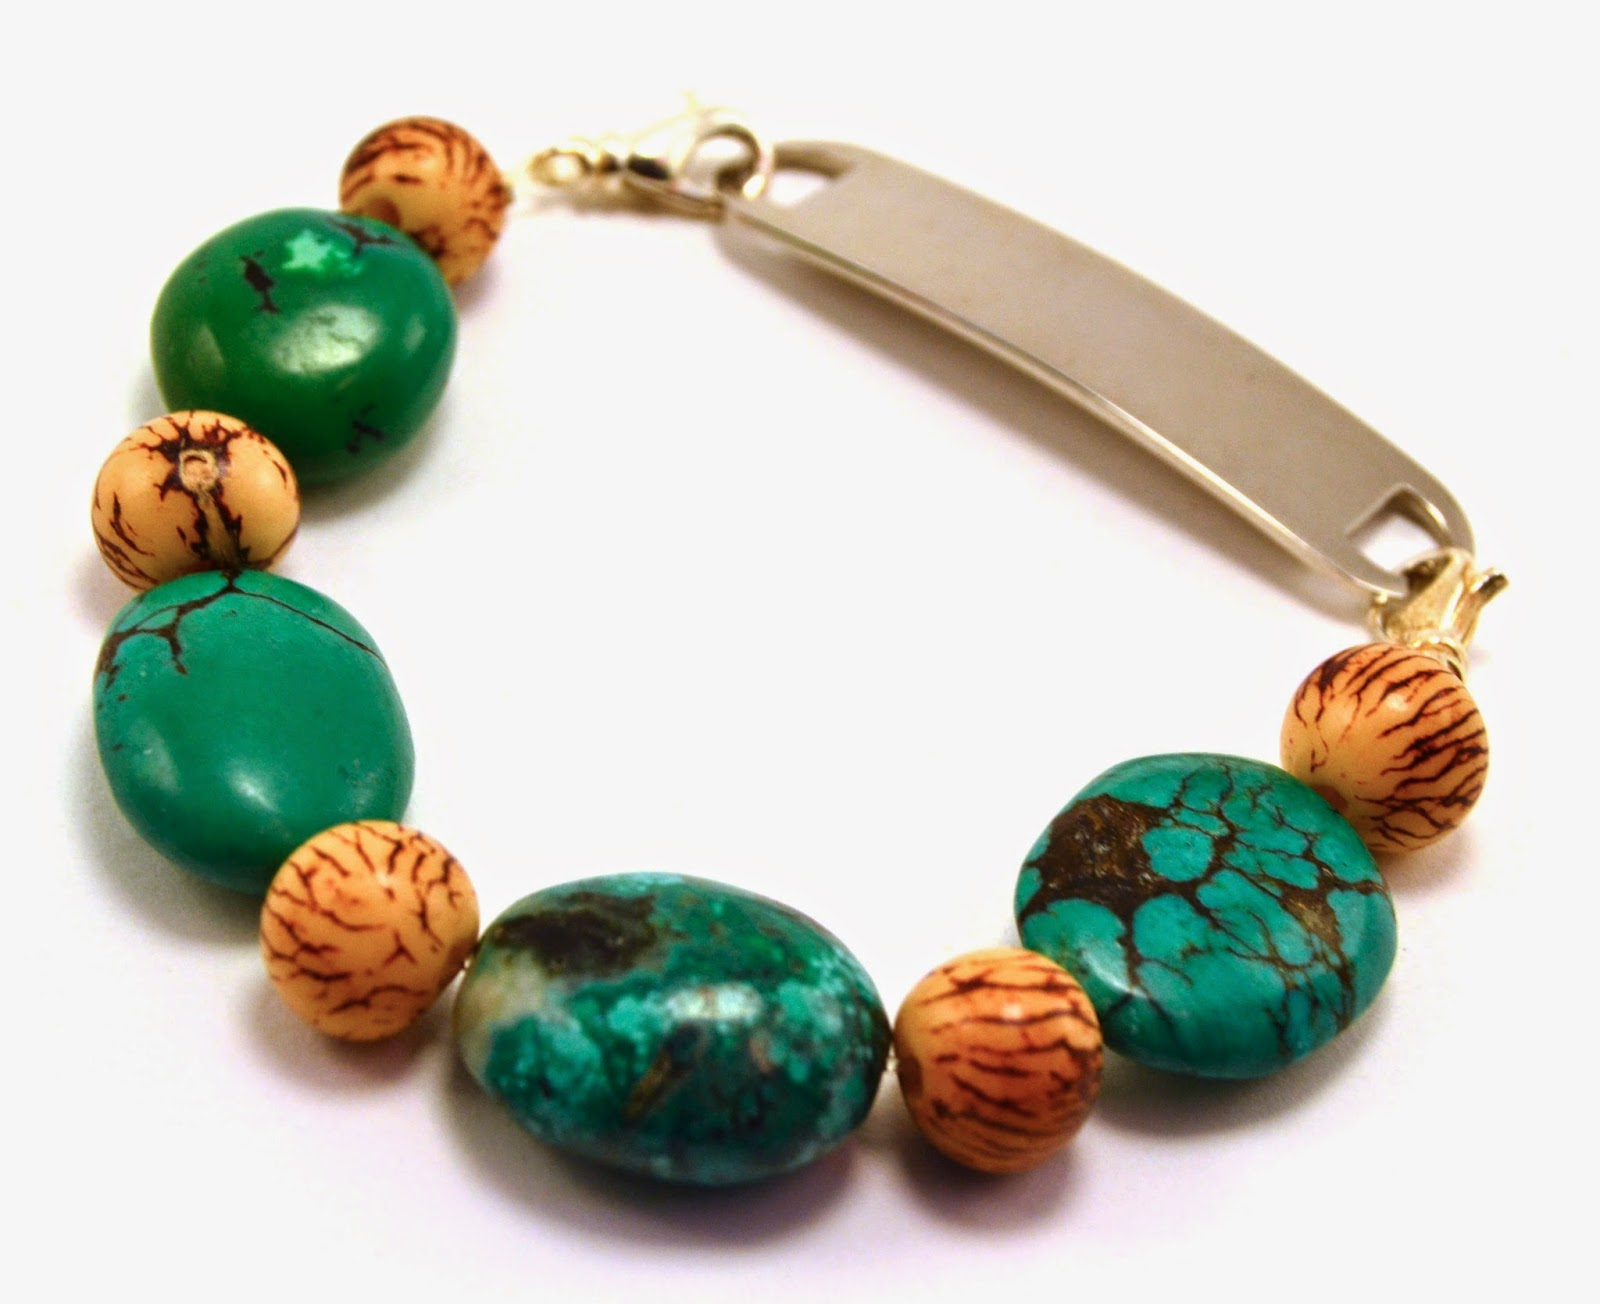 https://www.etsy.com/listing/207275586/chunky-turquoise-and-brown-medical?ref=listing-shop-header-1